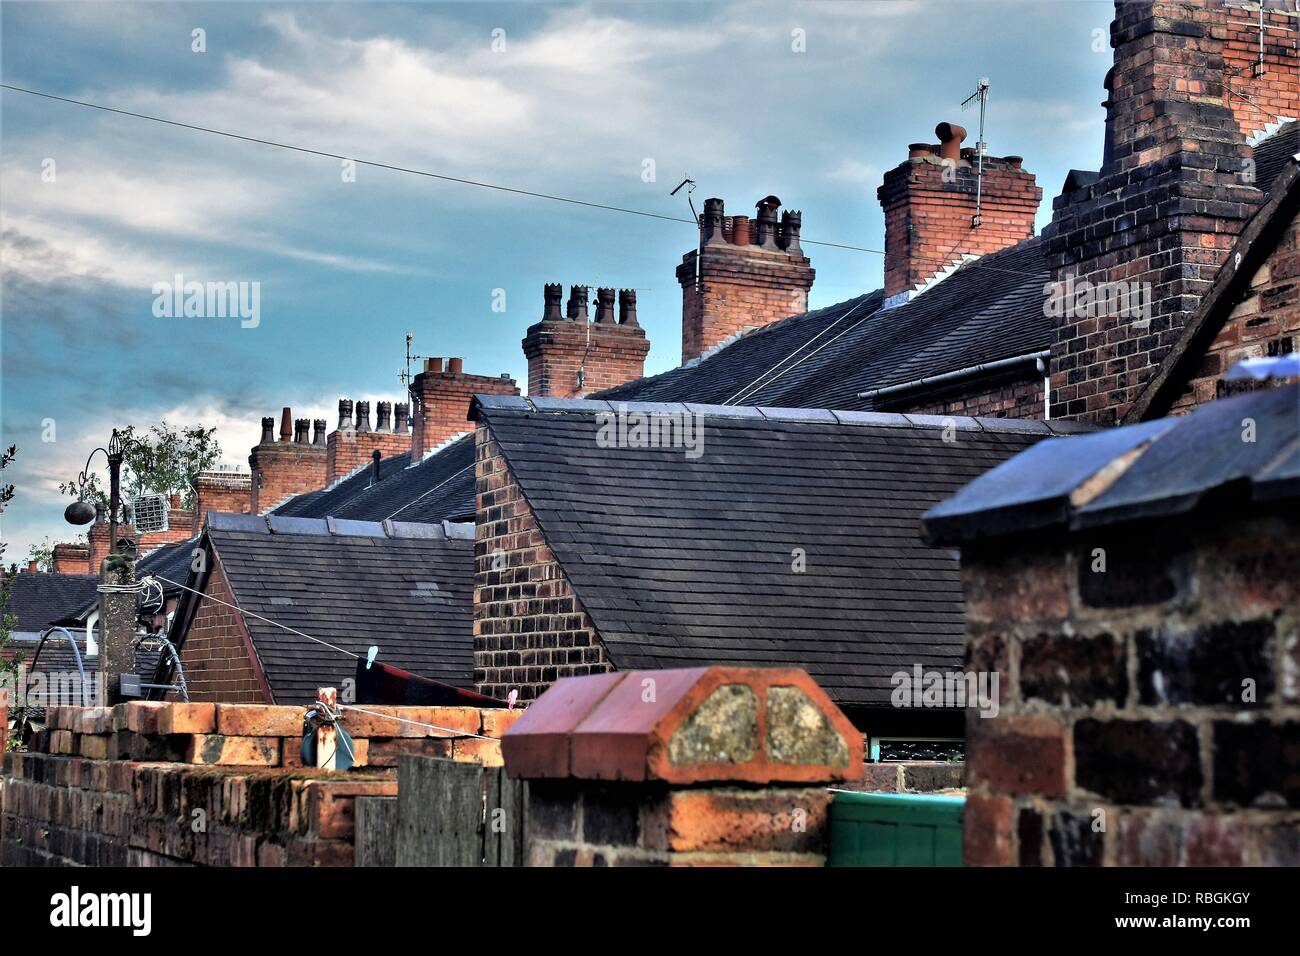 Rooftops and chimneys over terraced housing, Stoke-on-Trent - Stock Image